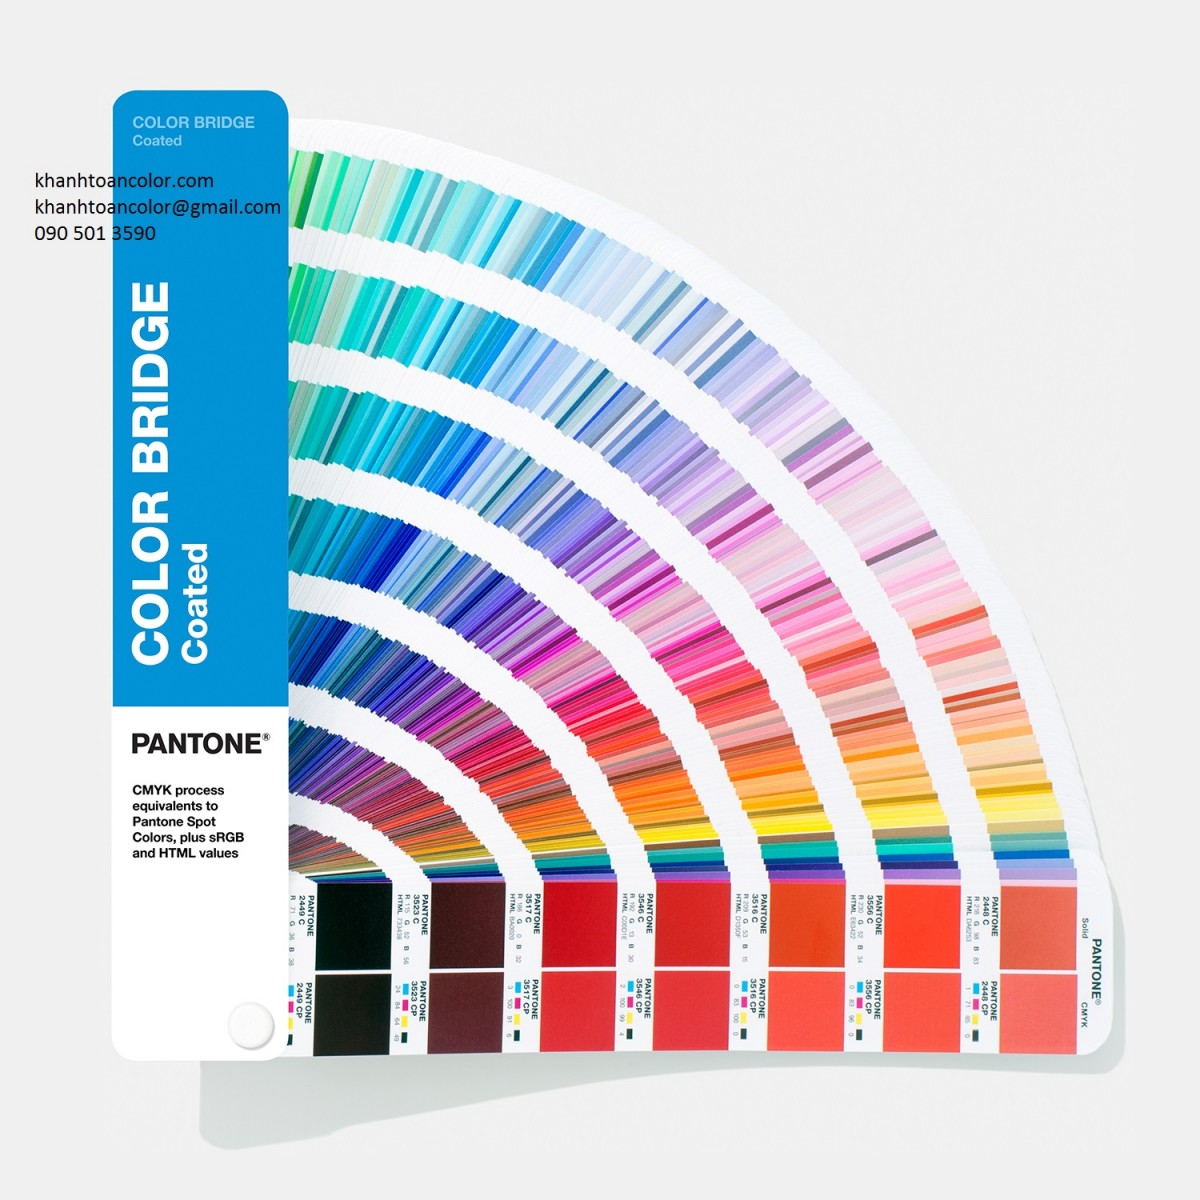 khanhtoancolor.com - Pantone Color Bridge Coated GG6103A (New 2019)